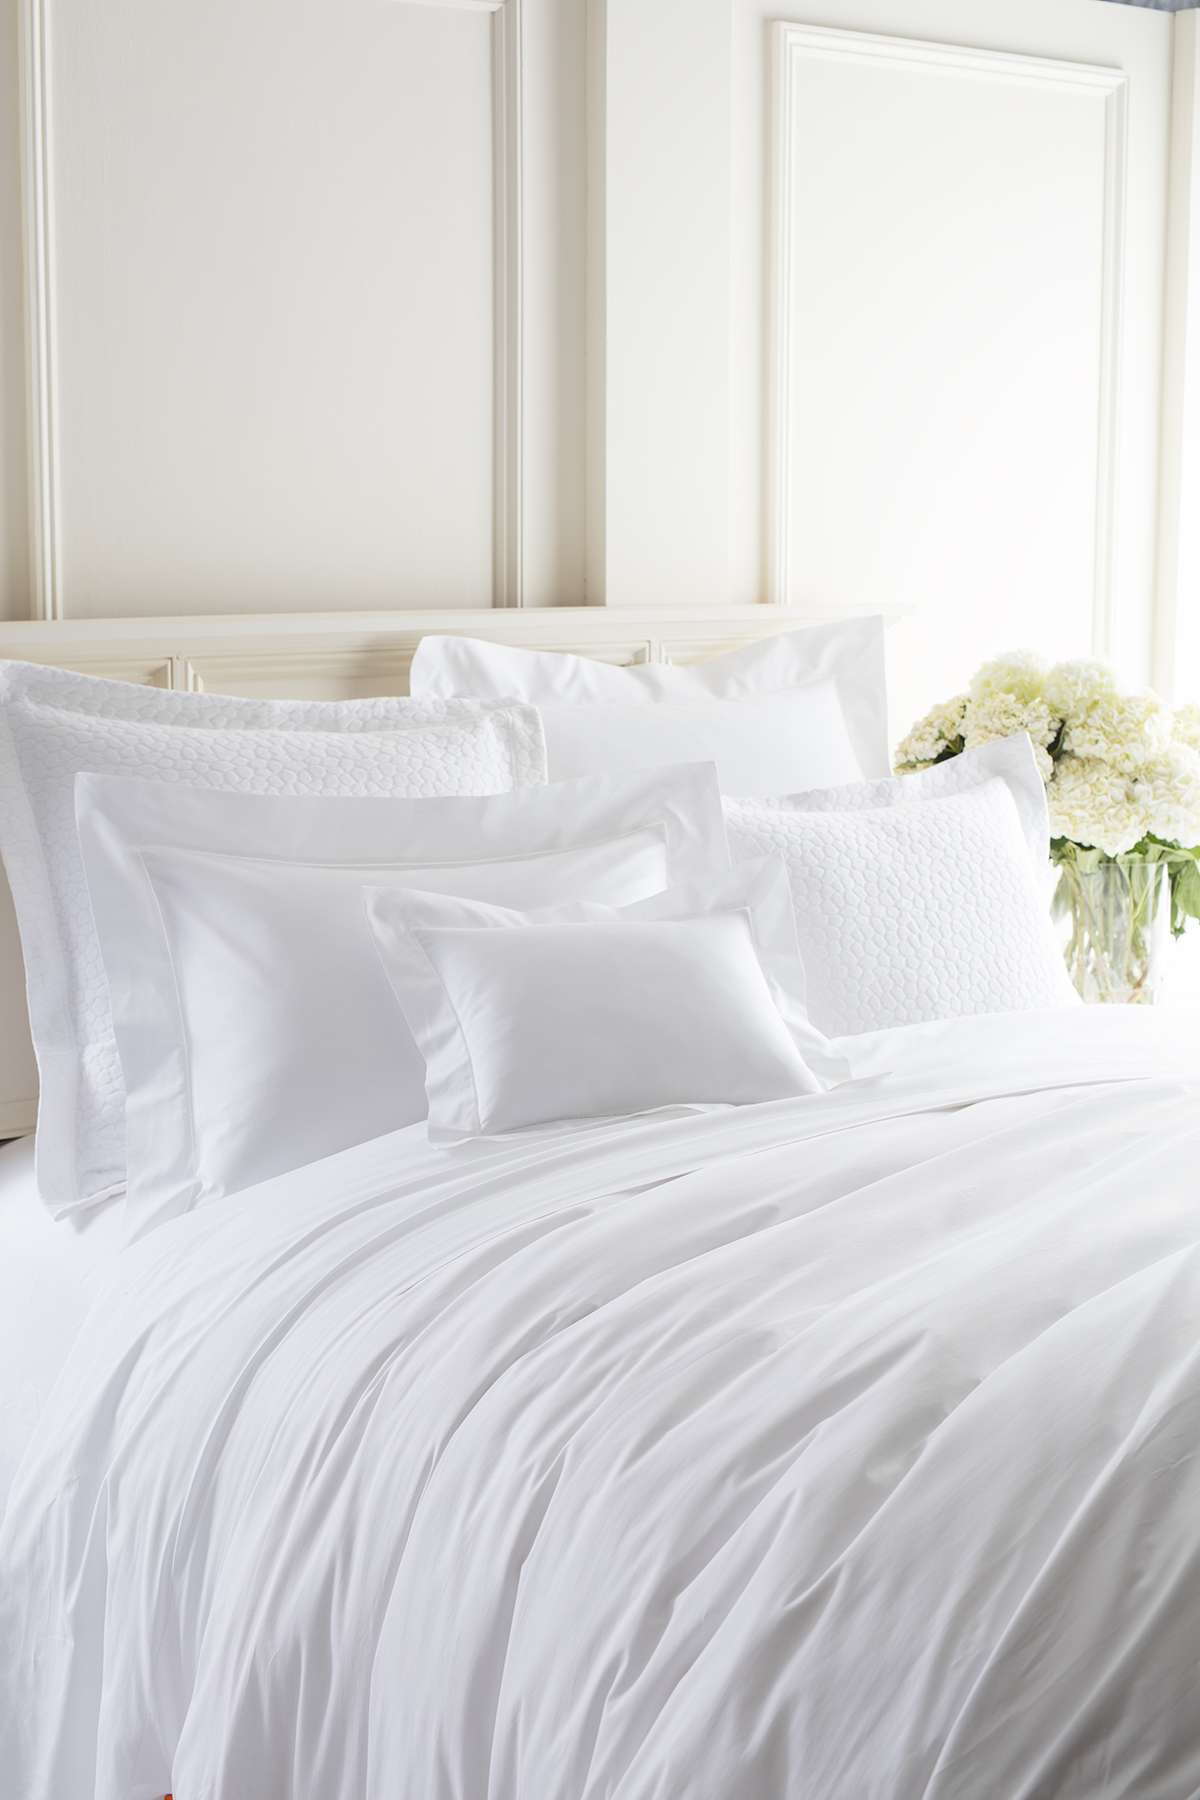 White Hotel Bed 7